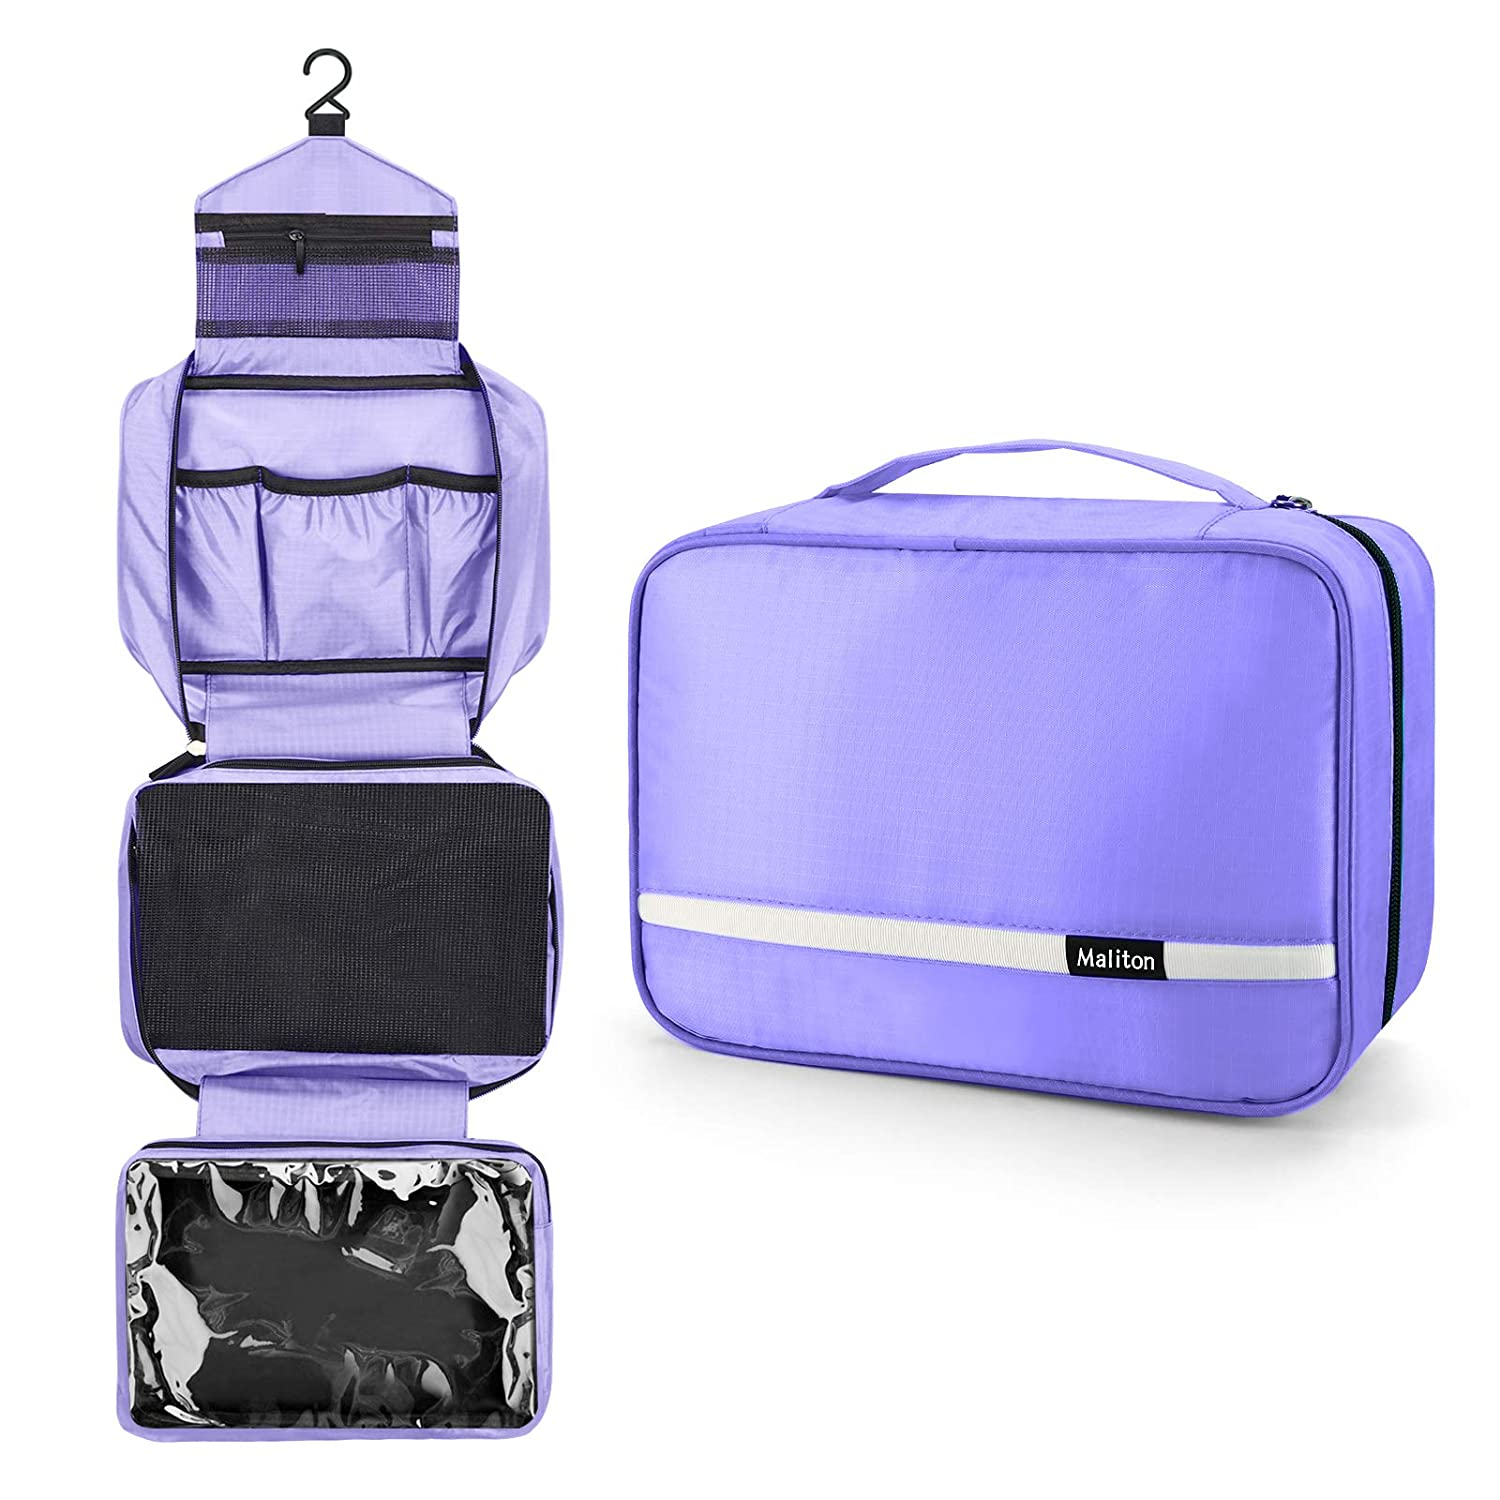 Travel Toiletry Bag for Maliton Women Deluxe mart Hanging with